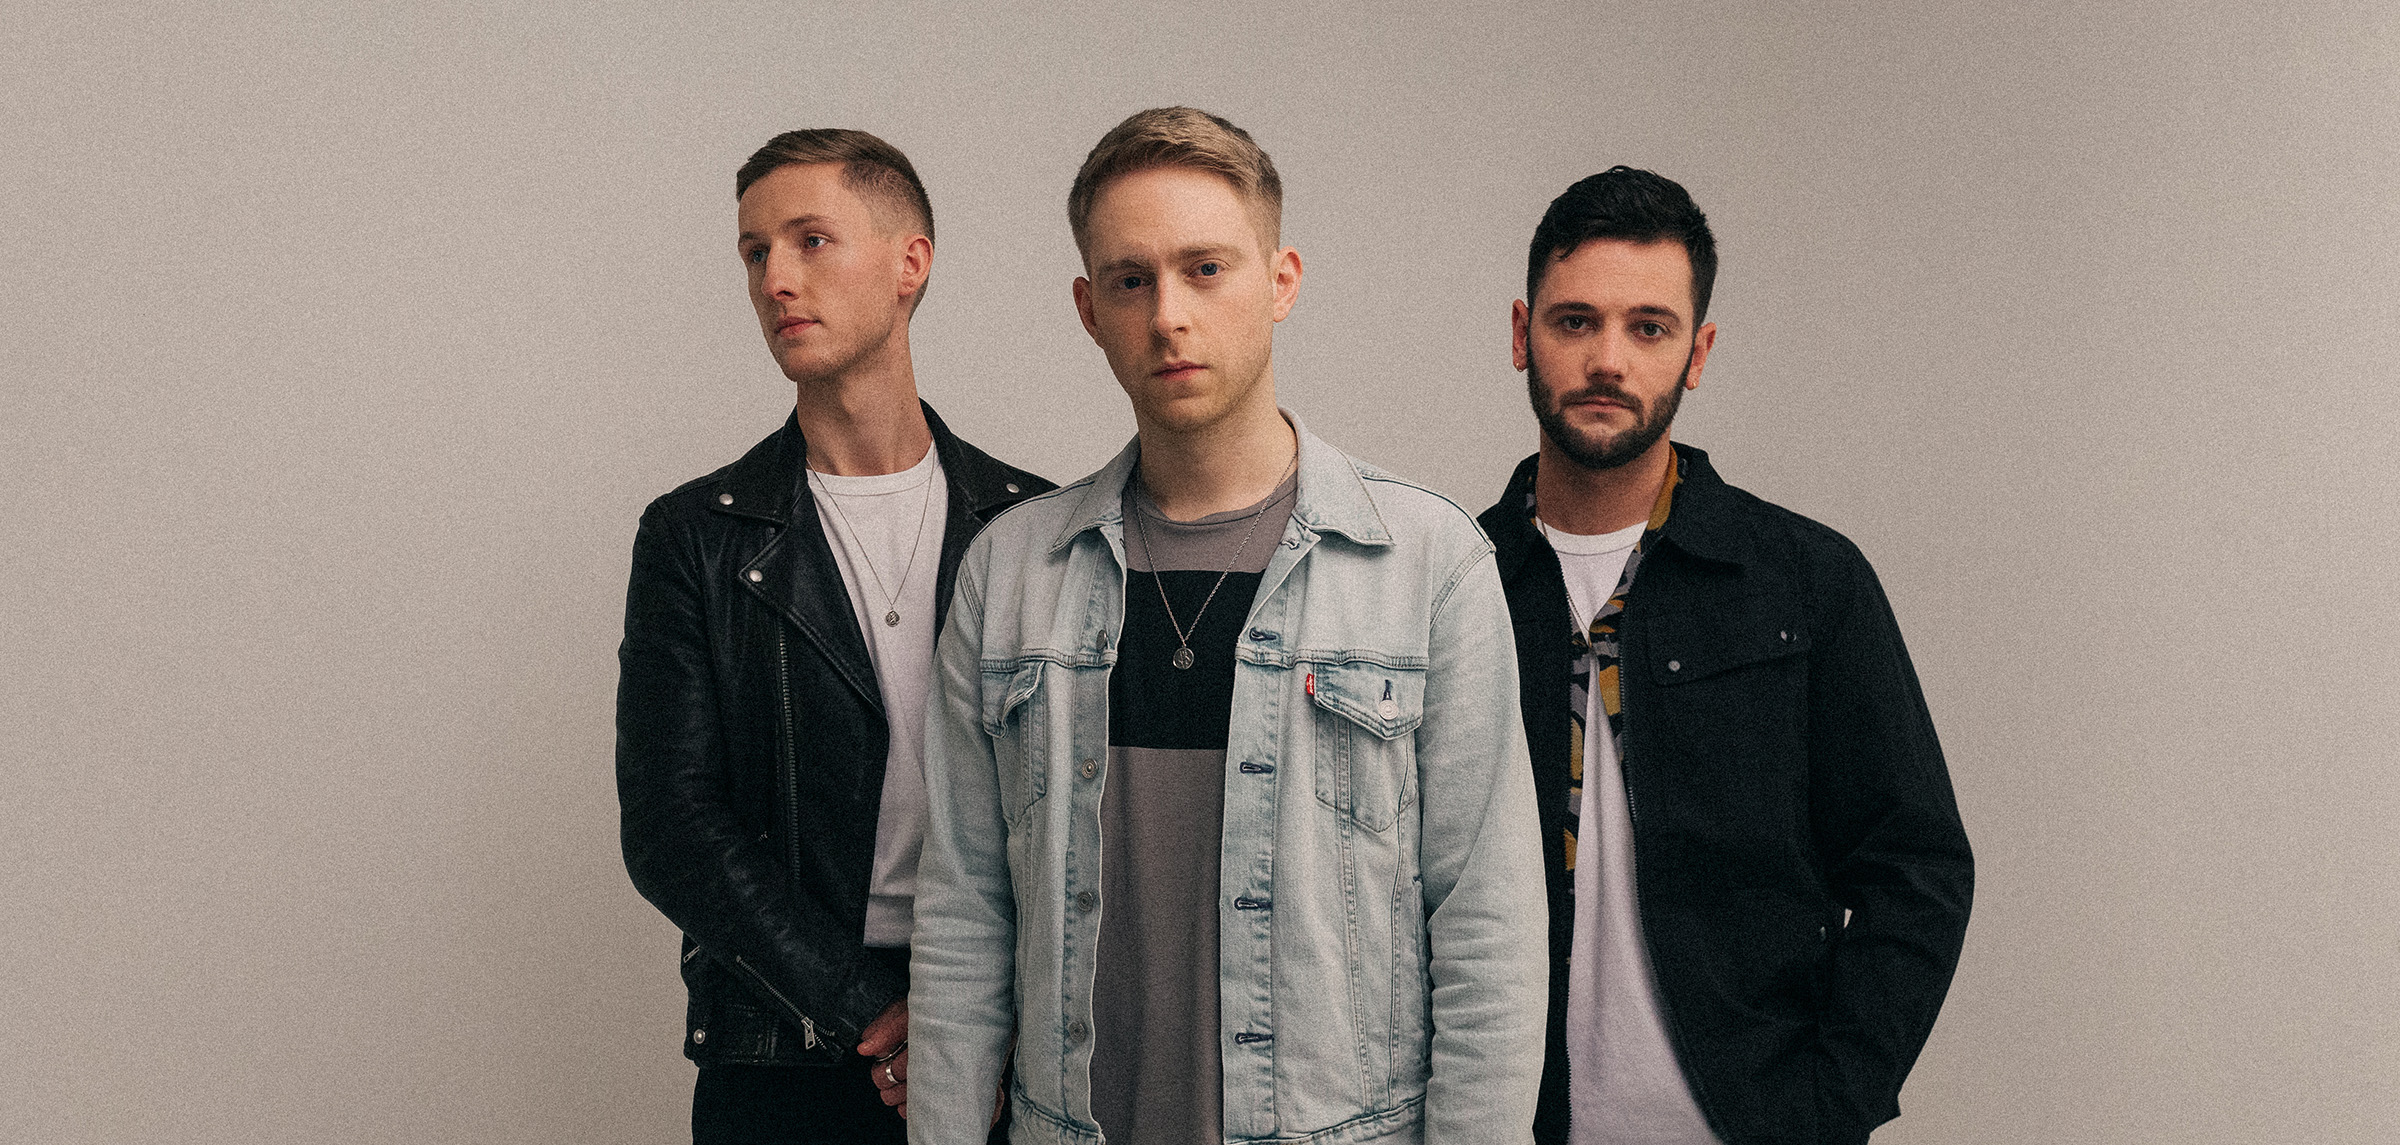 FLAWES announce their largest headline show to date at London's OMEARA on October 2nd